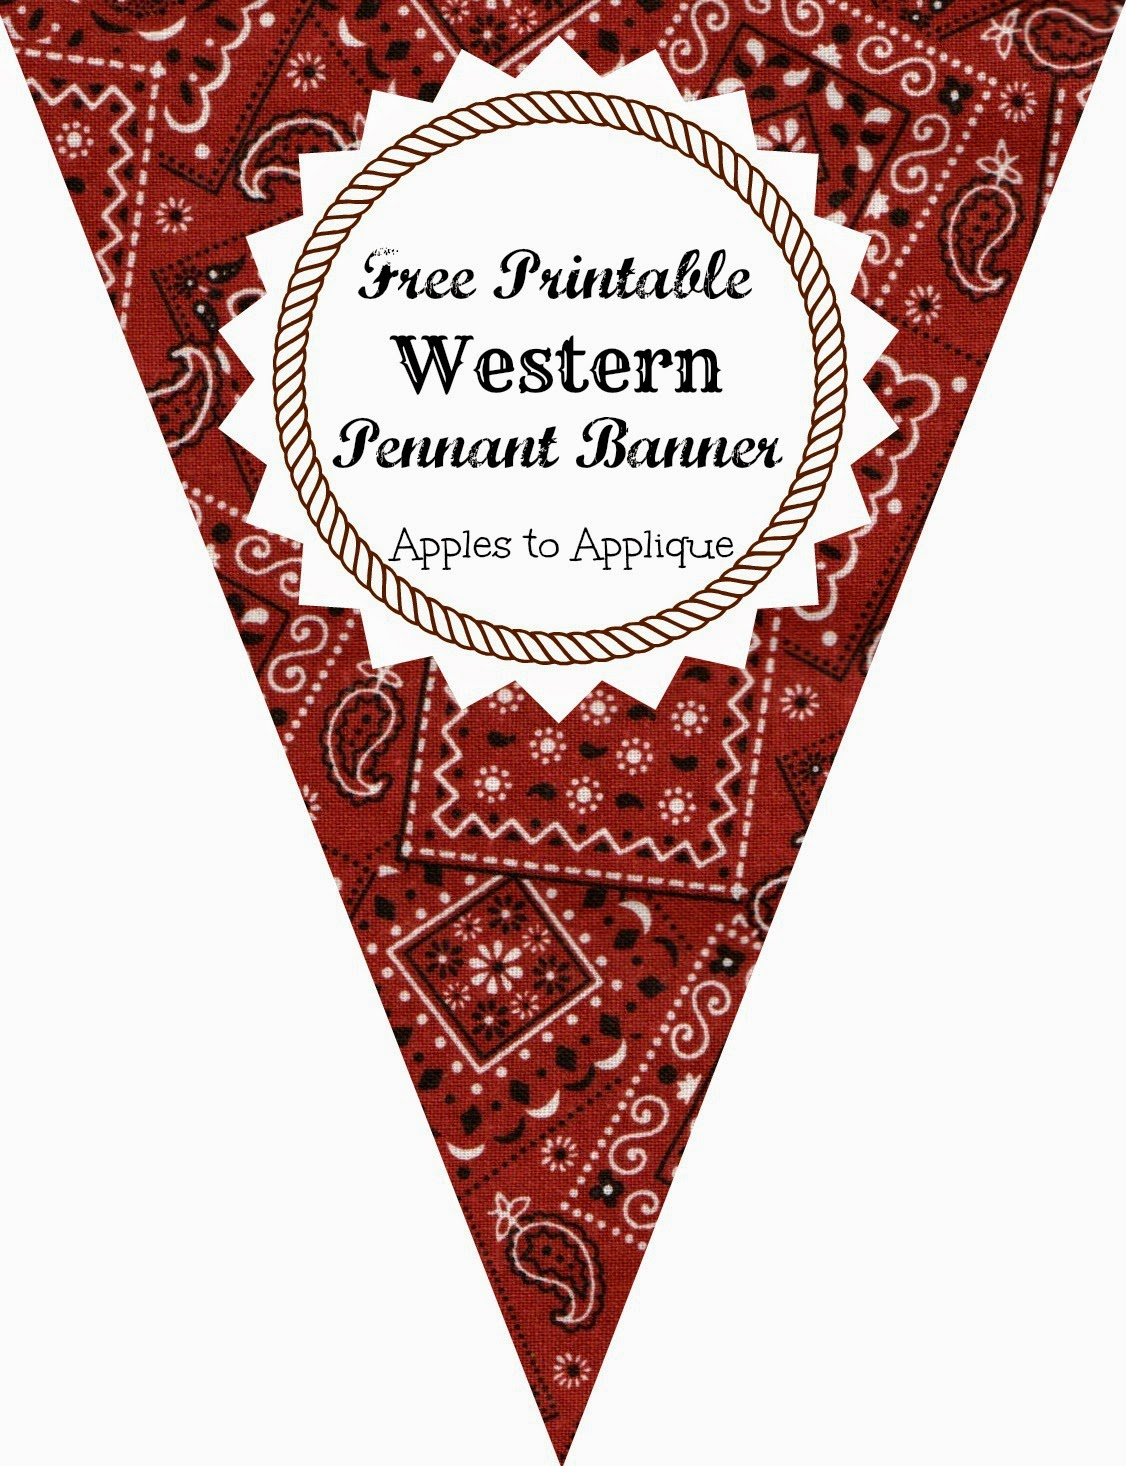 photo regarding Printable Pennant Banner referred to as Apples in direction of Applique: Western Social gathering: Pennant Banner Cost-free